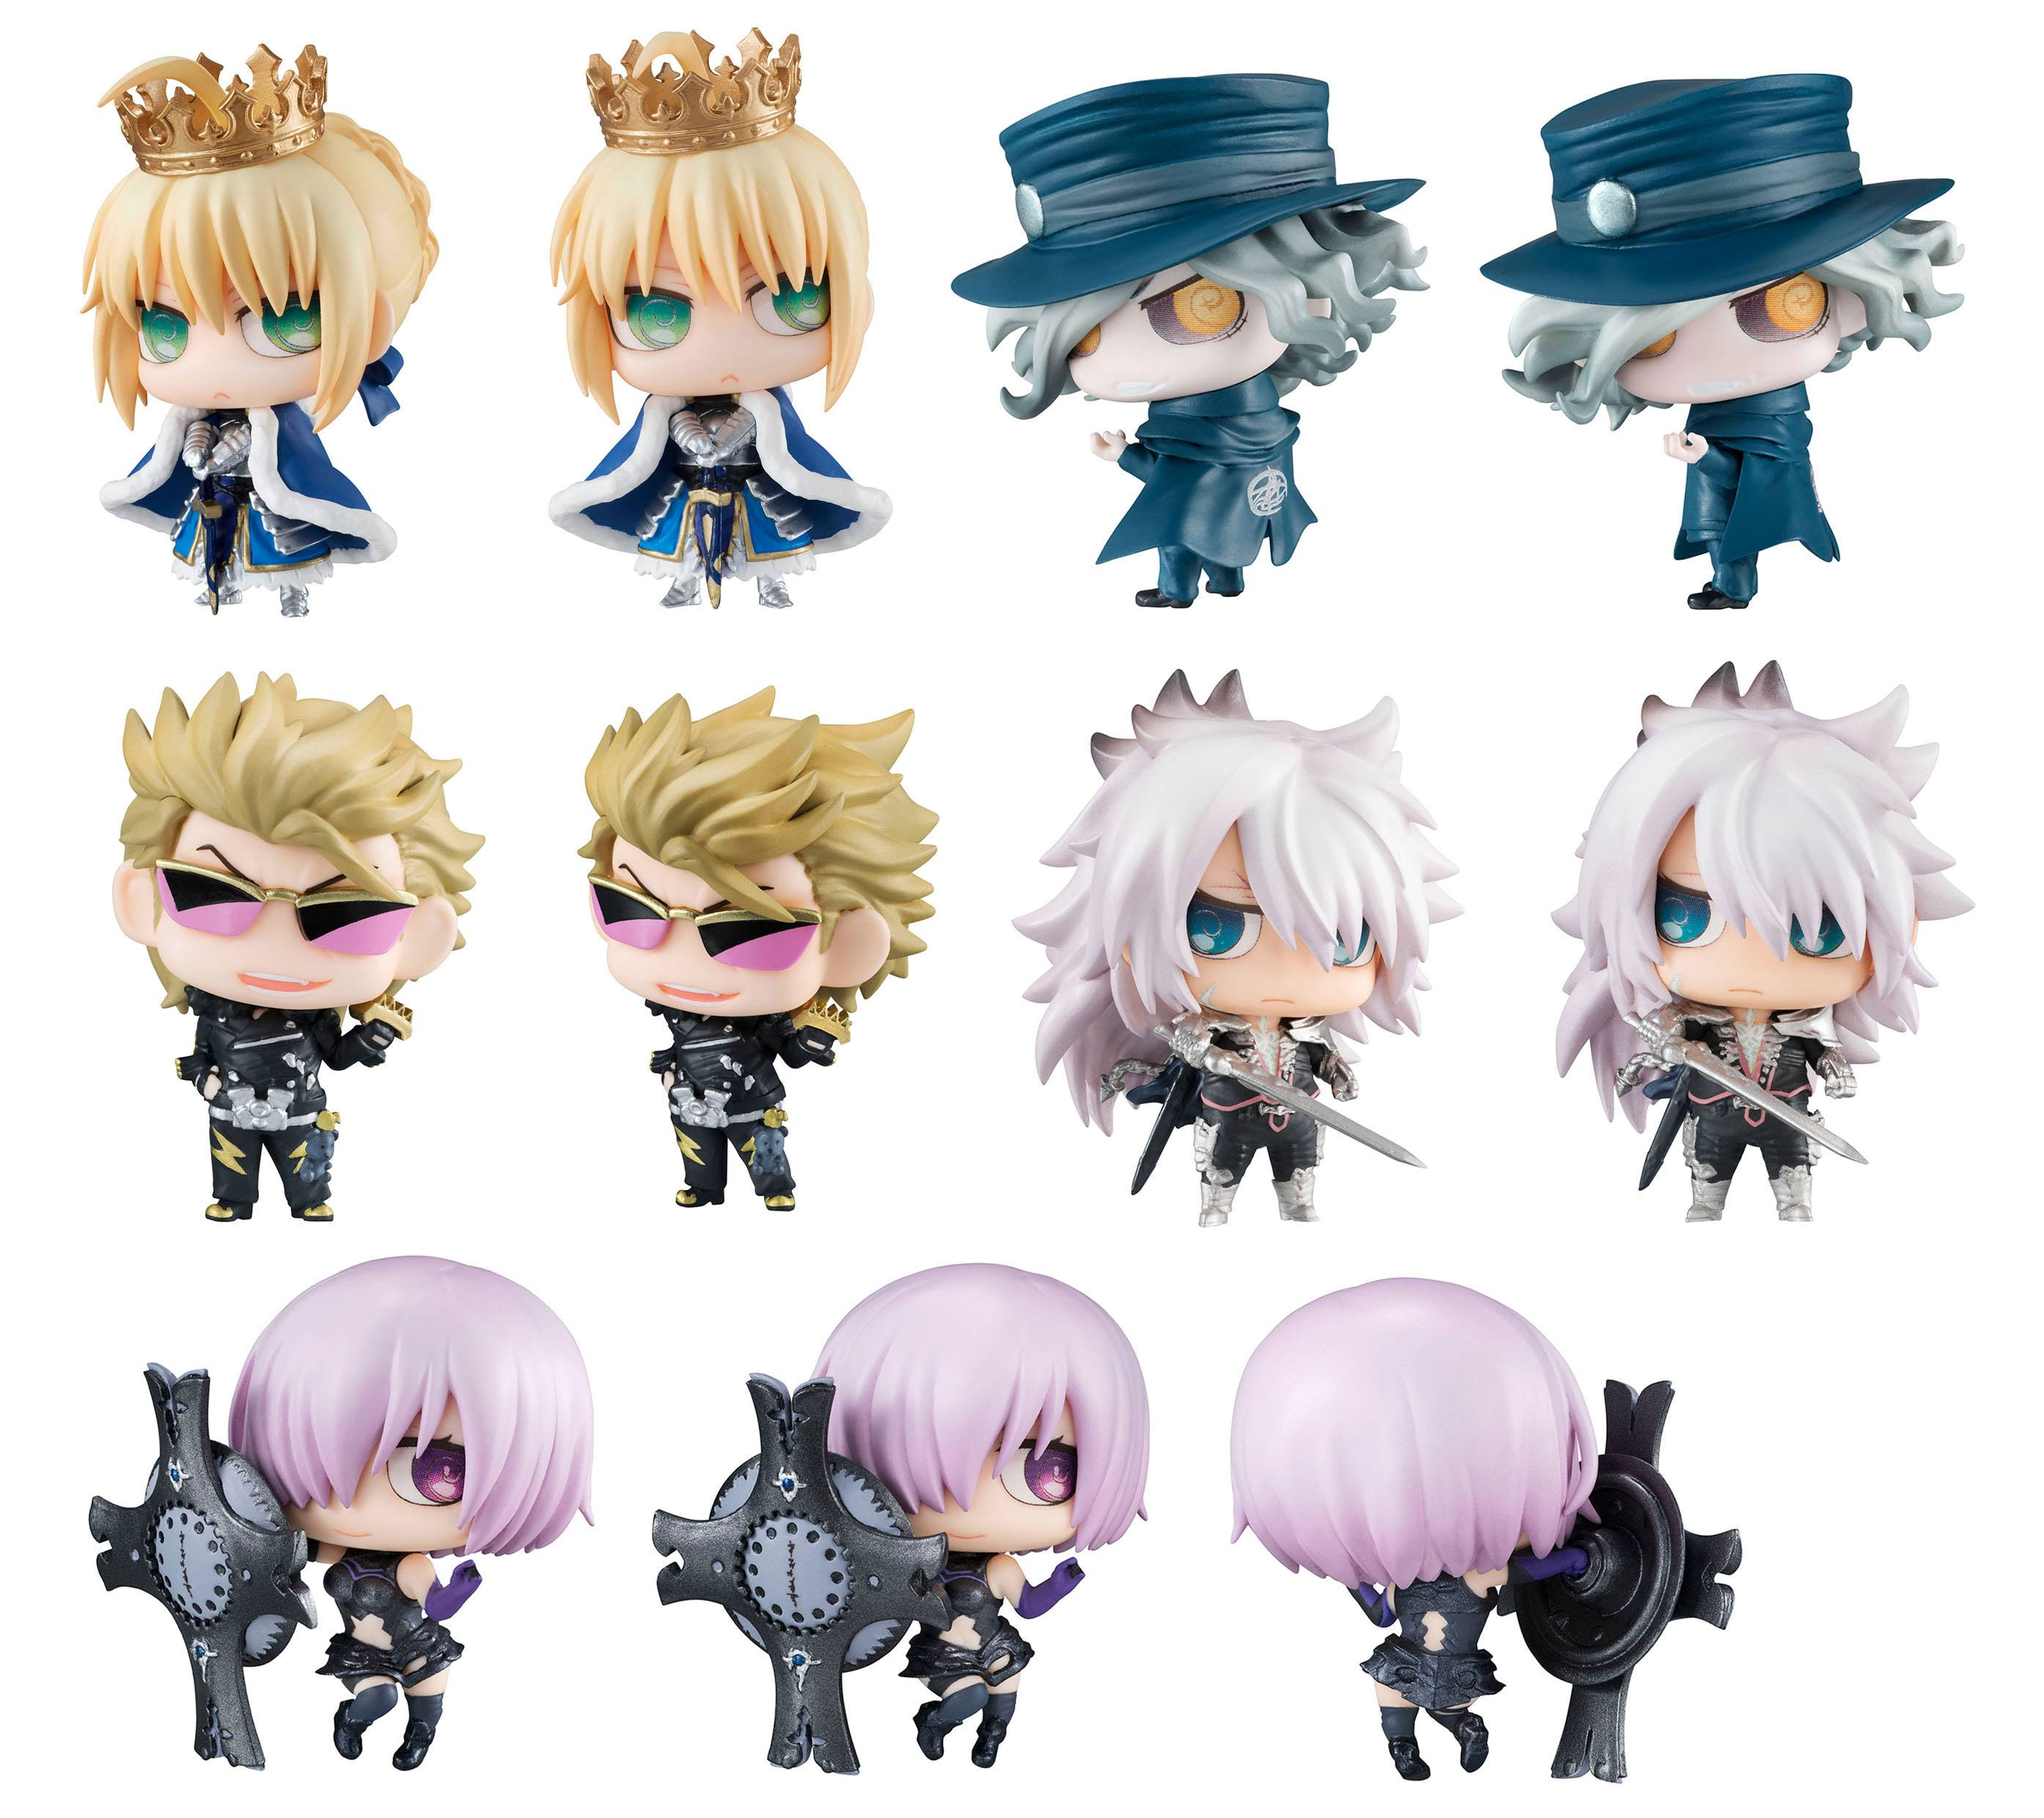 Fate/Grand Order Petit Chara Pretty Soldier Trading Figure 6 cm Chimimega  No  1 Assortment (6)